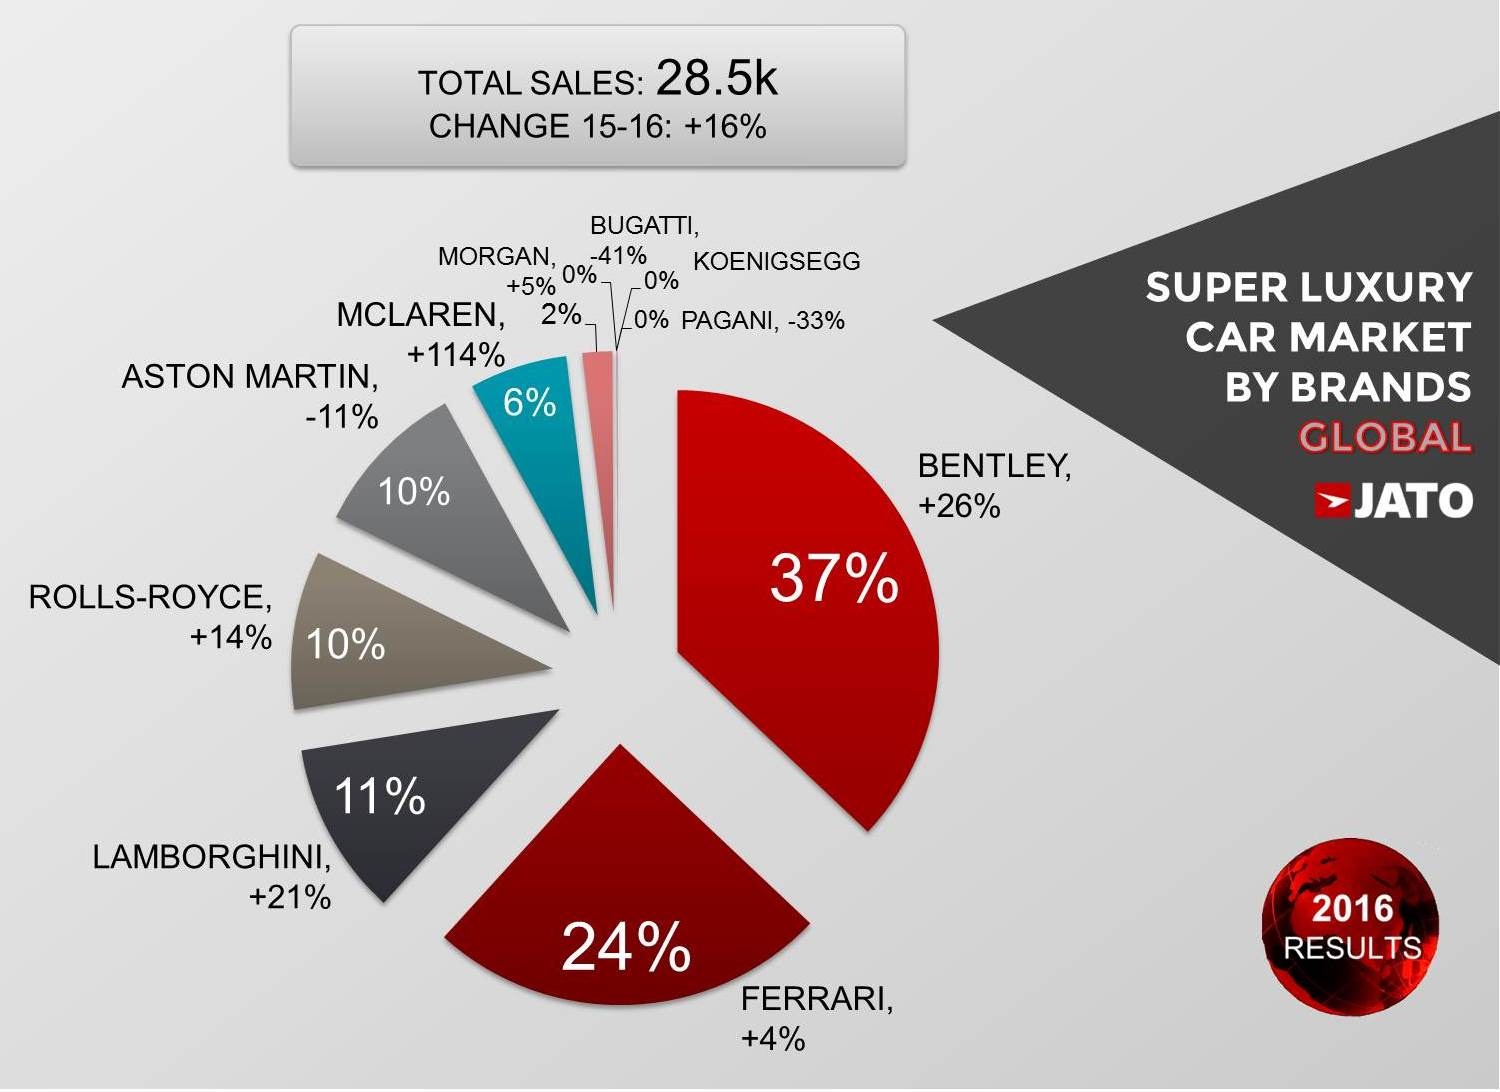 Super Luxury Car Sales Posted A Double Digit Growth As World